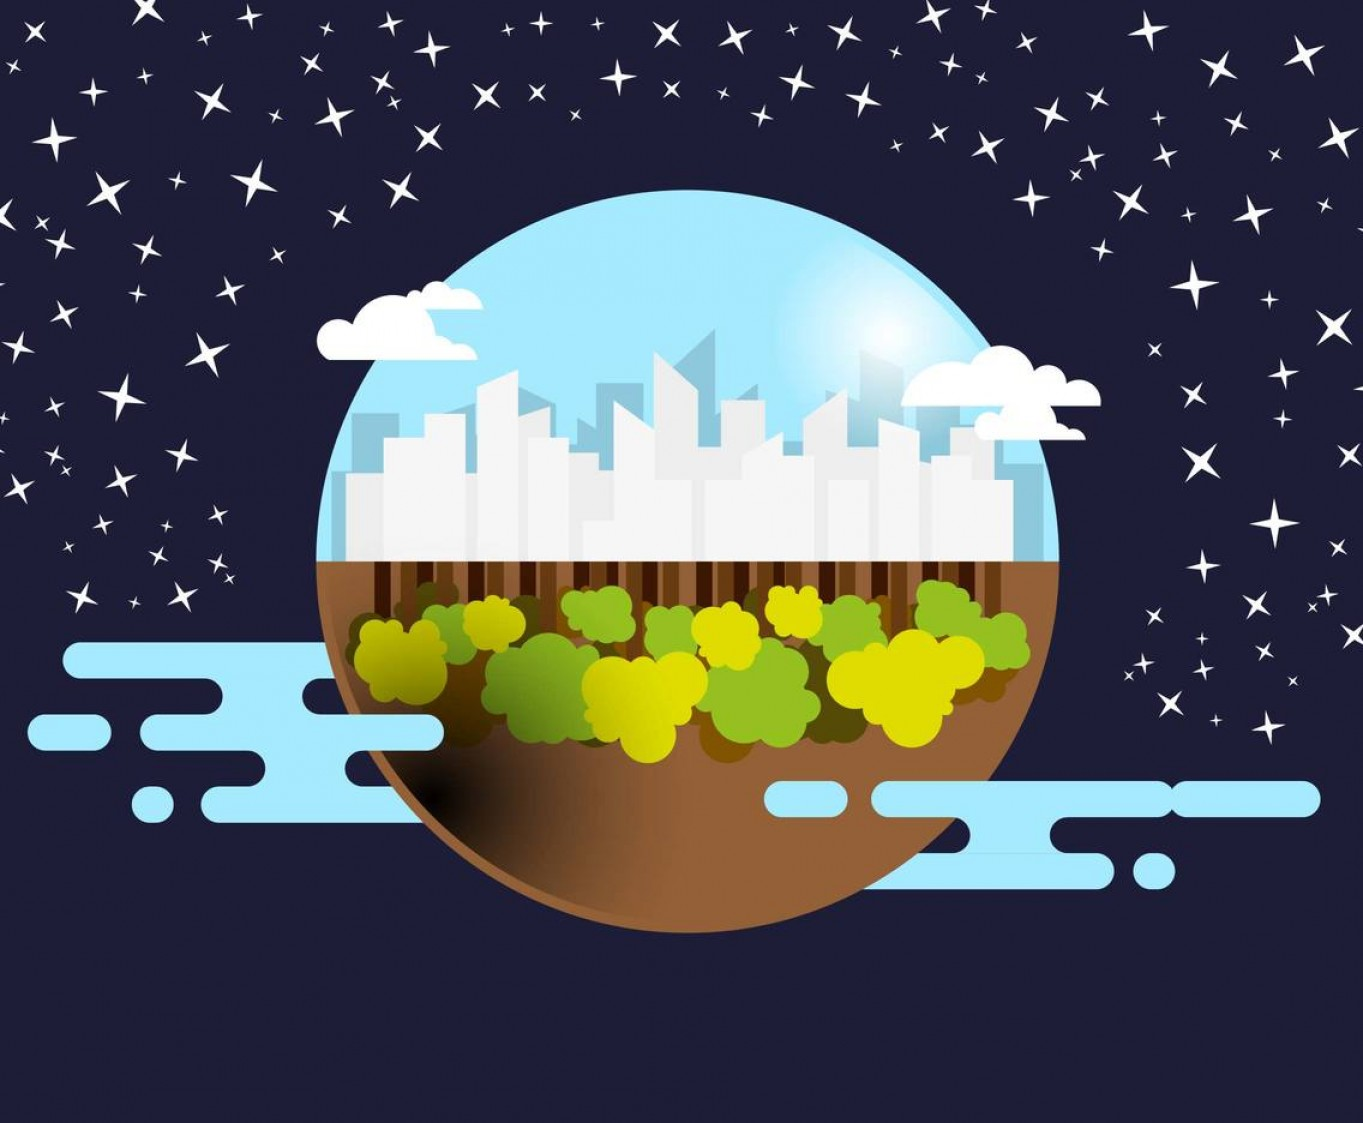 Planets Vector Graphics: Utopia Landscape City Planet Vector